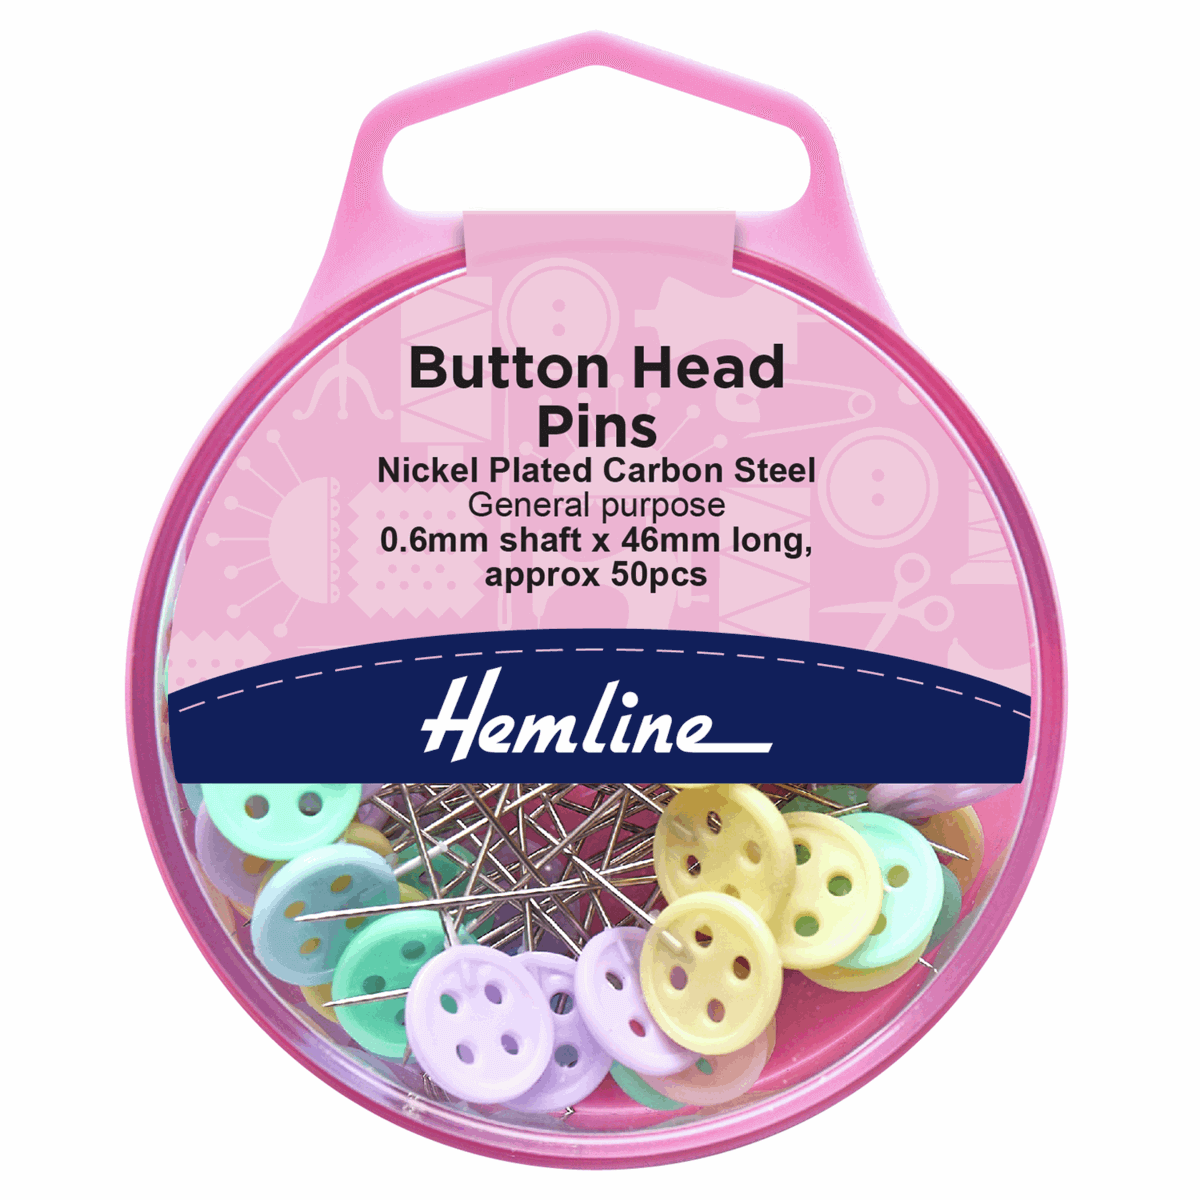 50 Button headed sewing pins in reusable storage box. Hemline. 46 mm x 0.6 mm